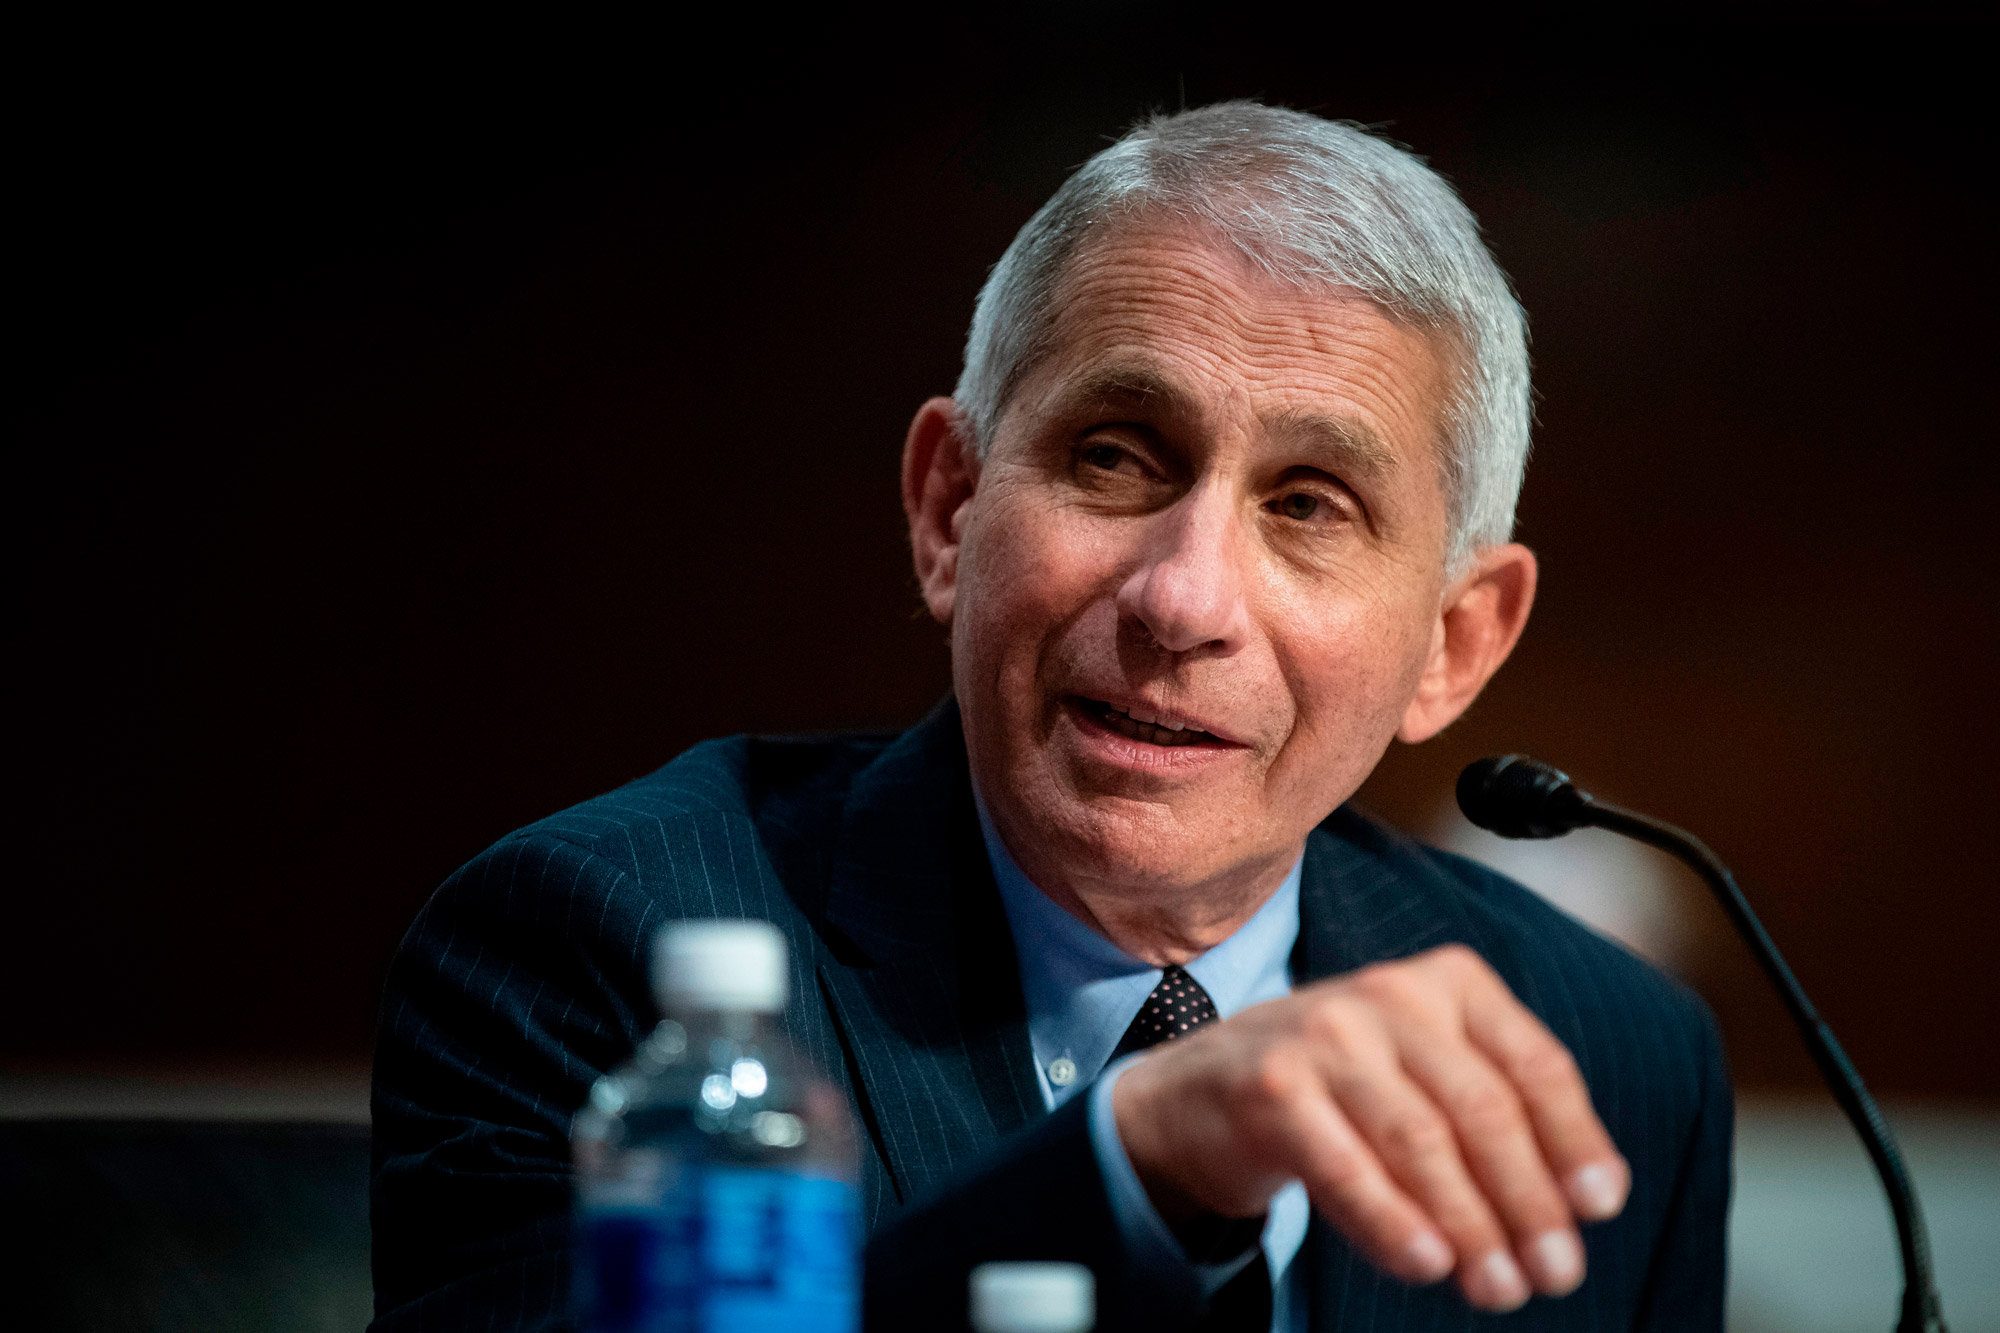 Anthony Fauci, director of the National Institute of Allergy and Infectious Diseases, speaks during a Senate Health, Education, Labor and Pensions Committee hearing in Washington, DC, on June 30.